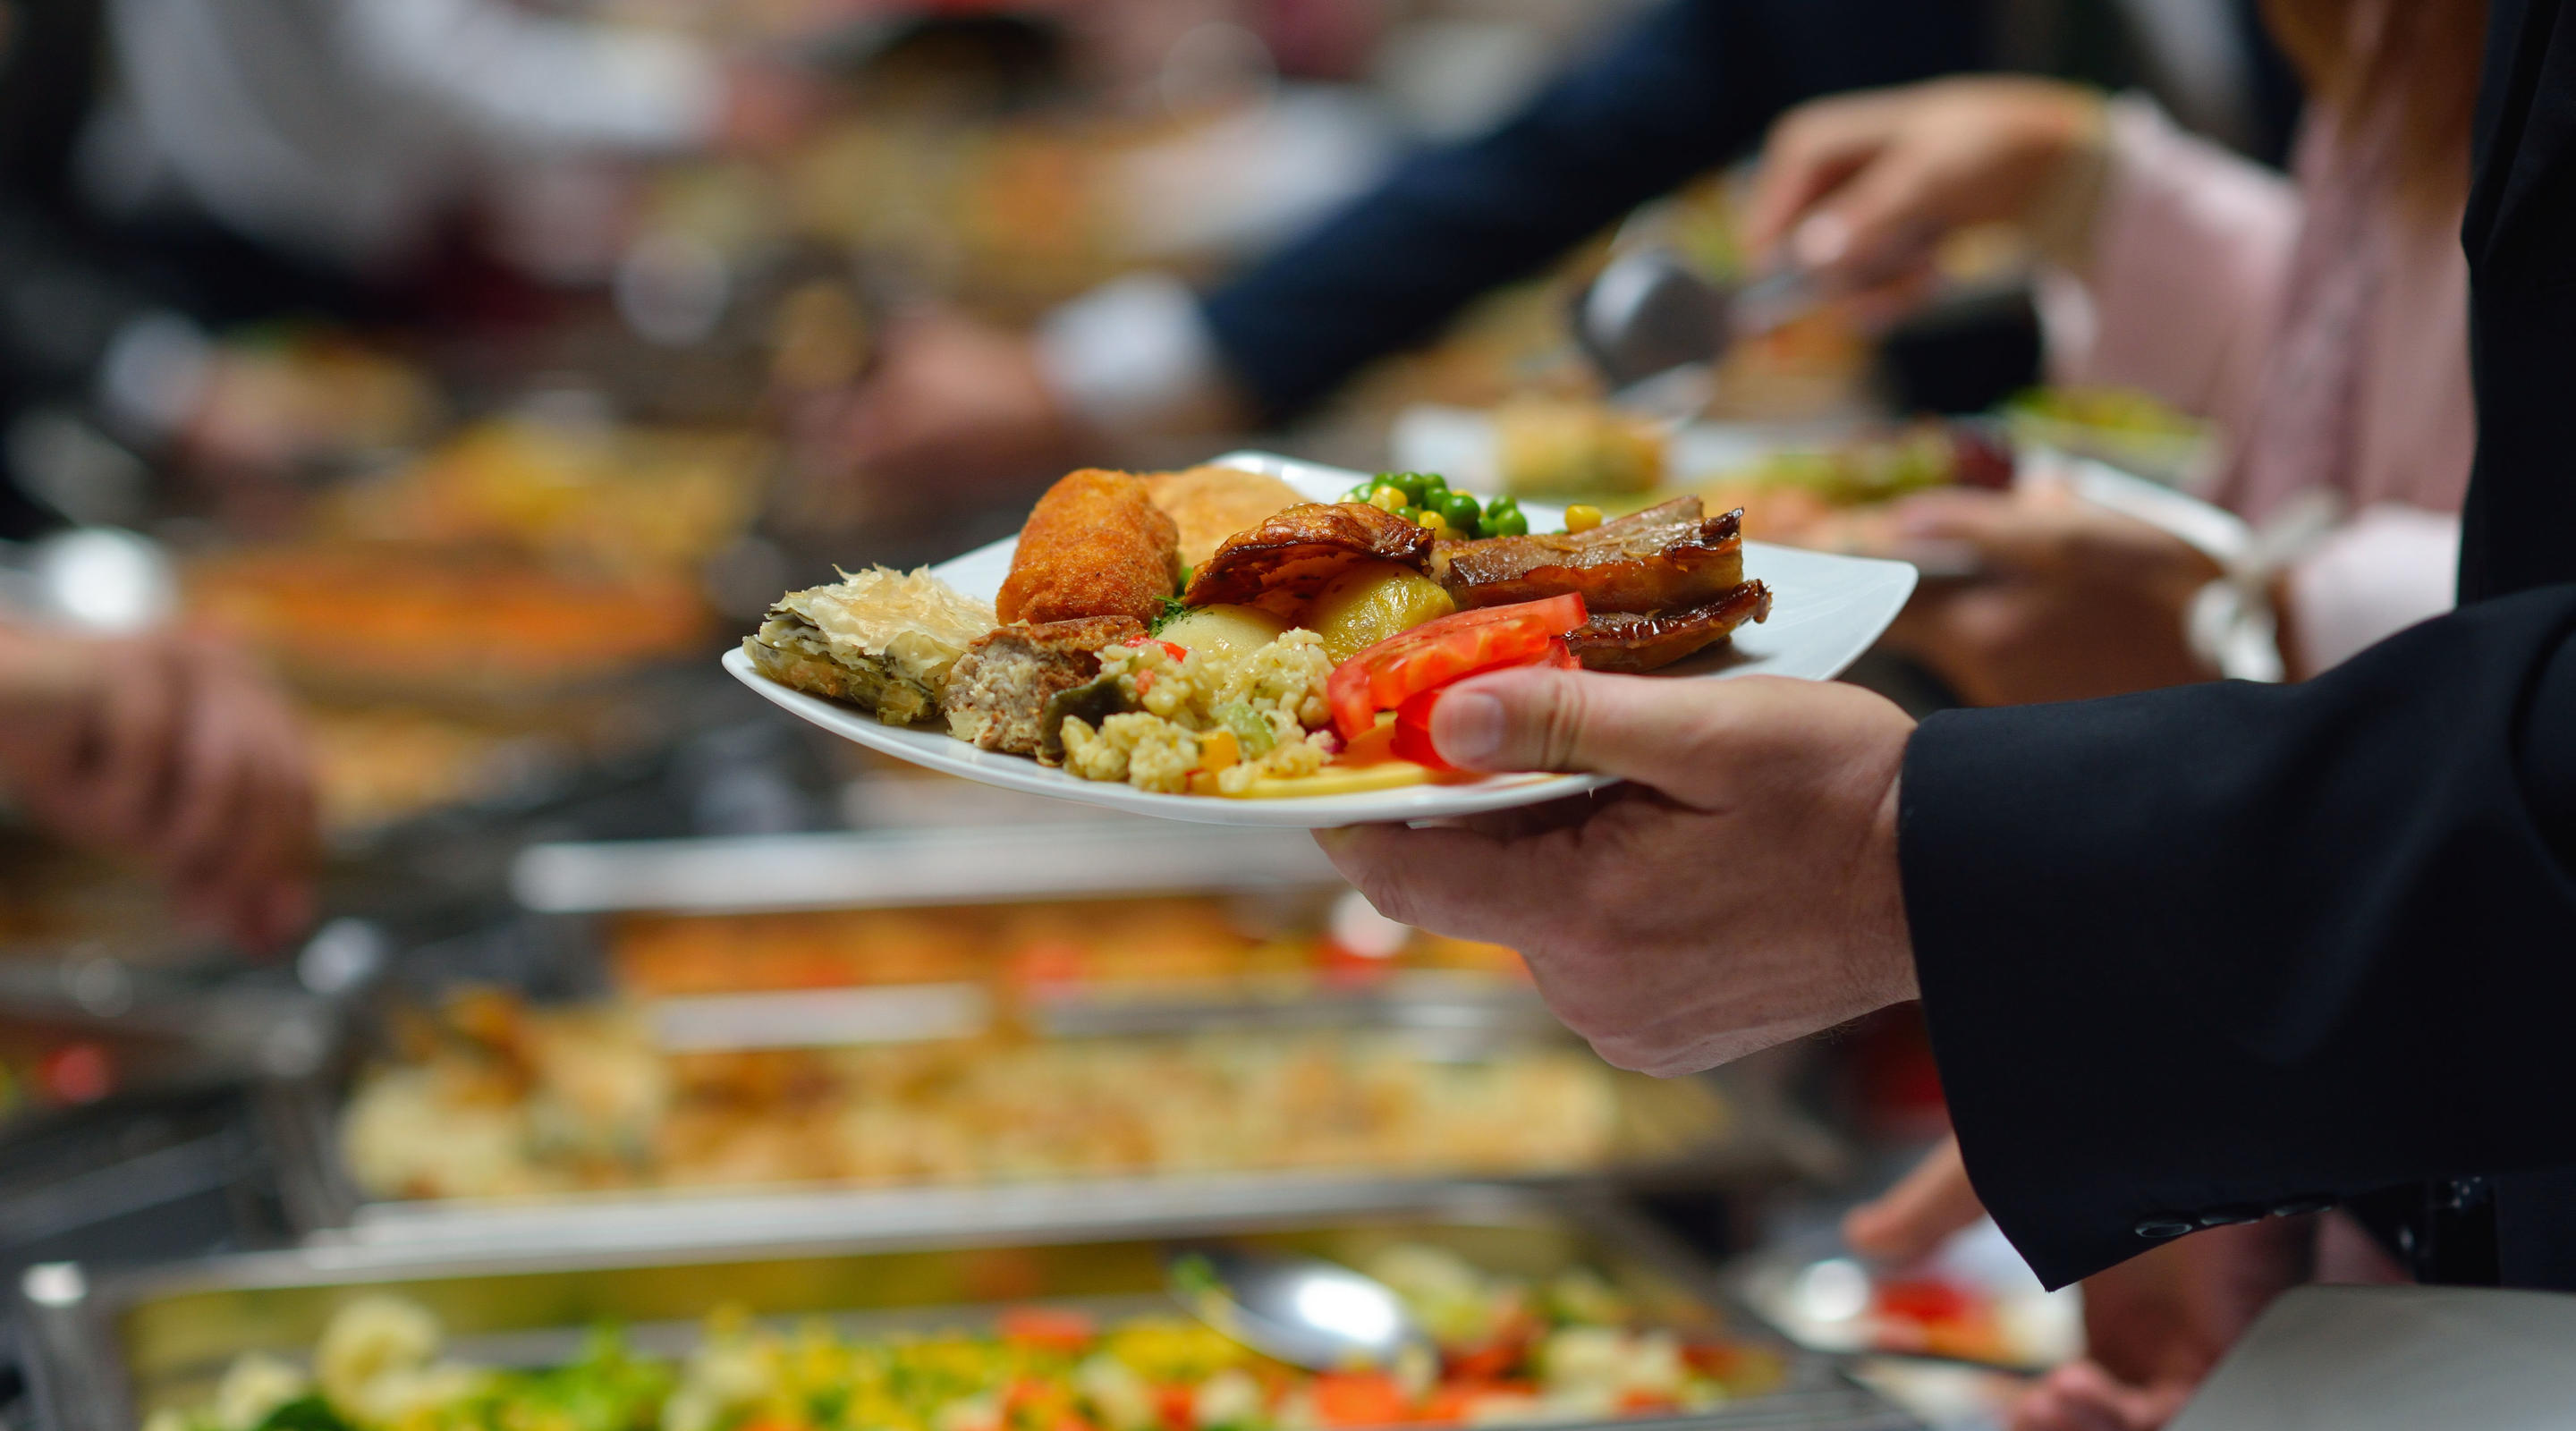 One of the largest Las Vegas buffets serving all your favorites for breakfast, brunch and dinner.